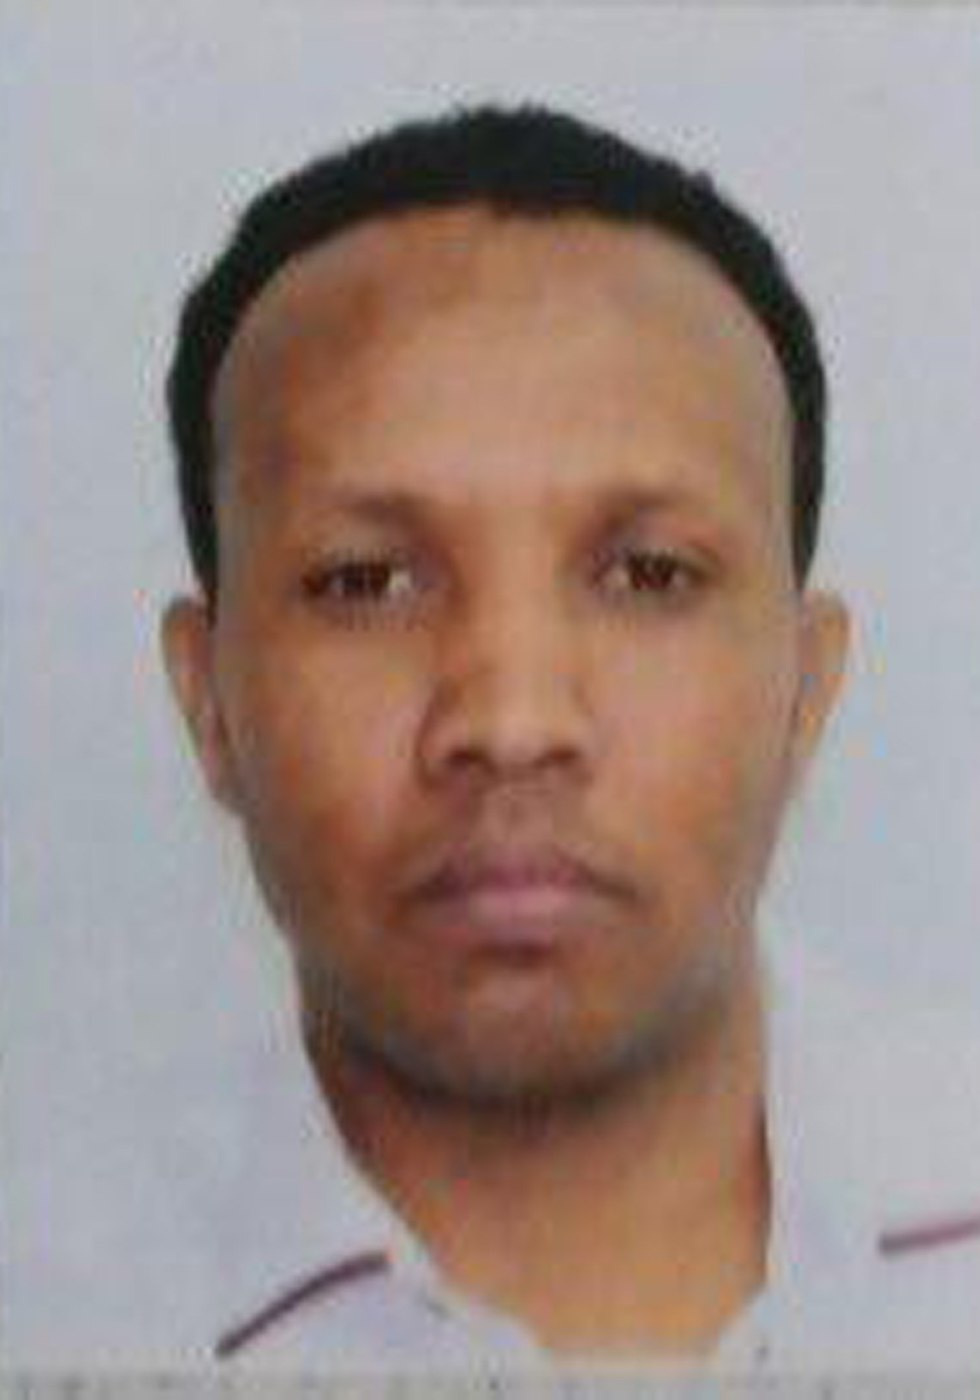 Tesfabran Tesfatsion, who is suspected of the murder of 13-year-old Silvana Tsegai